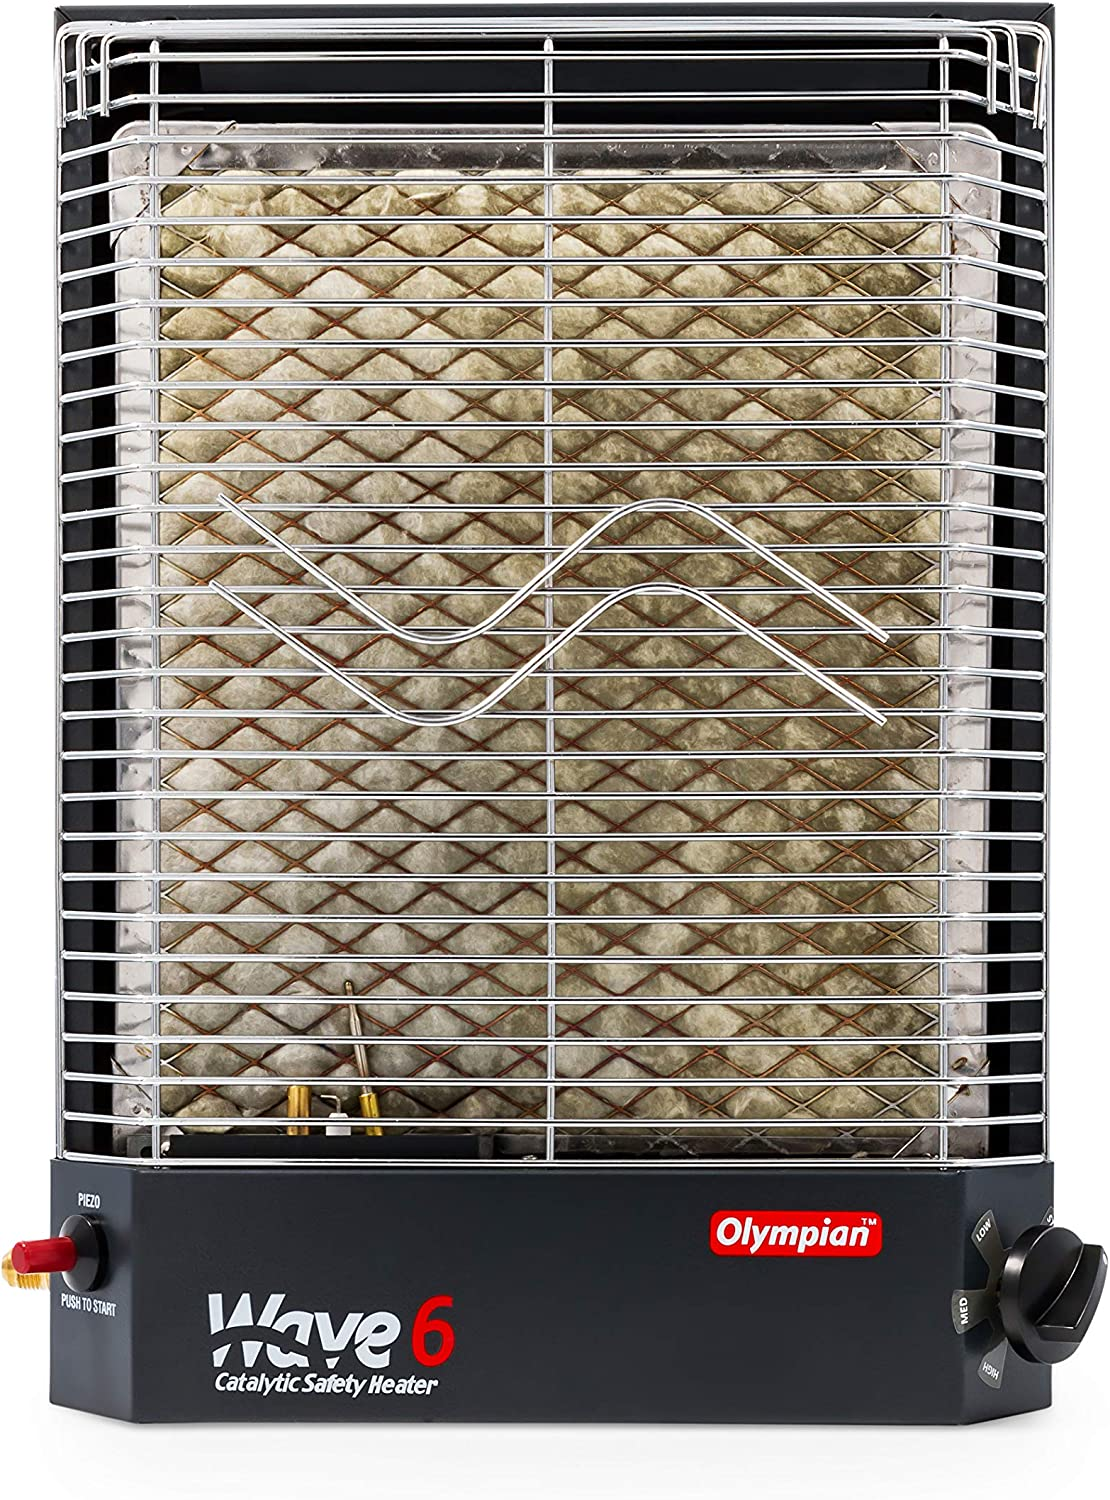 Camco Olympian Gas Catalytic Heater